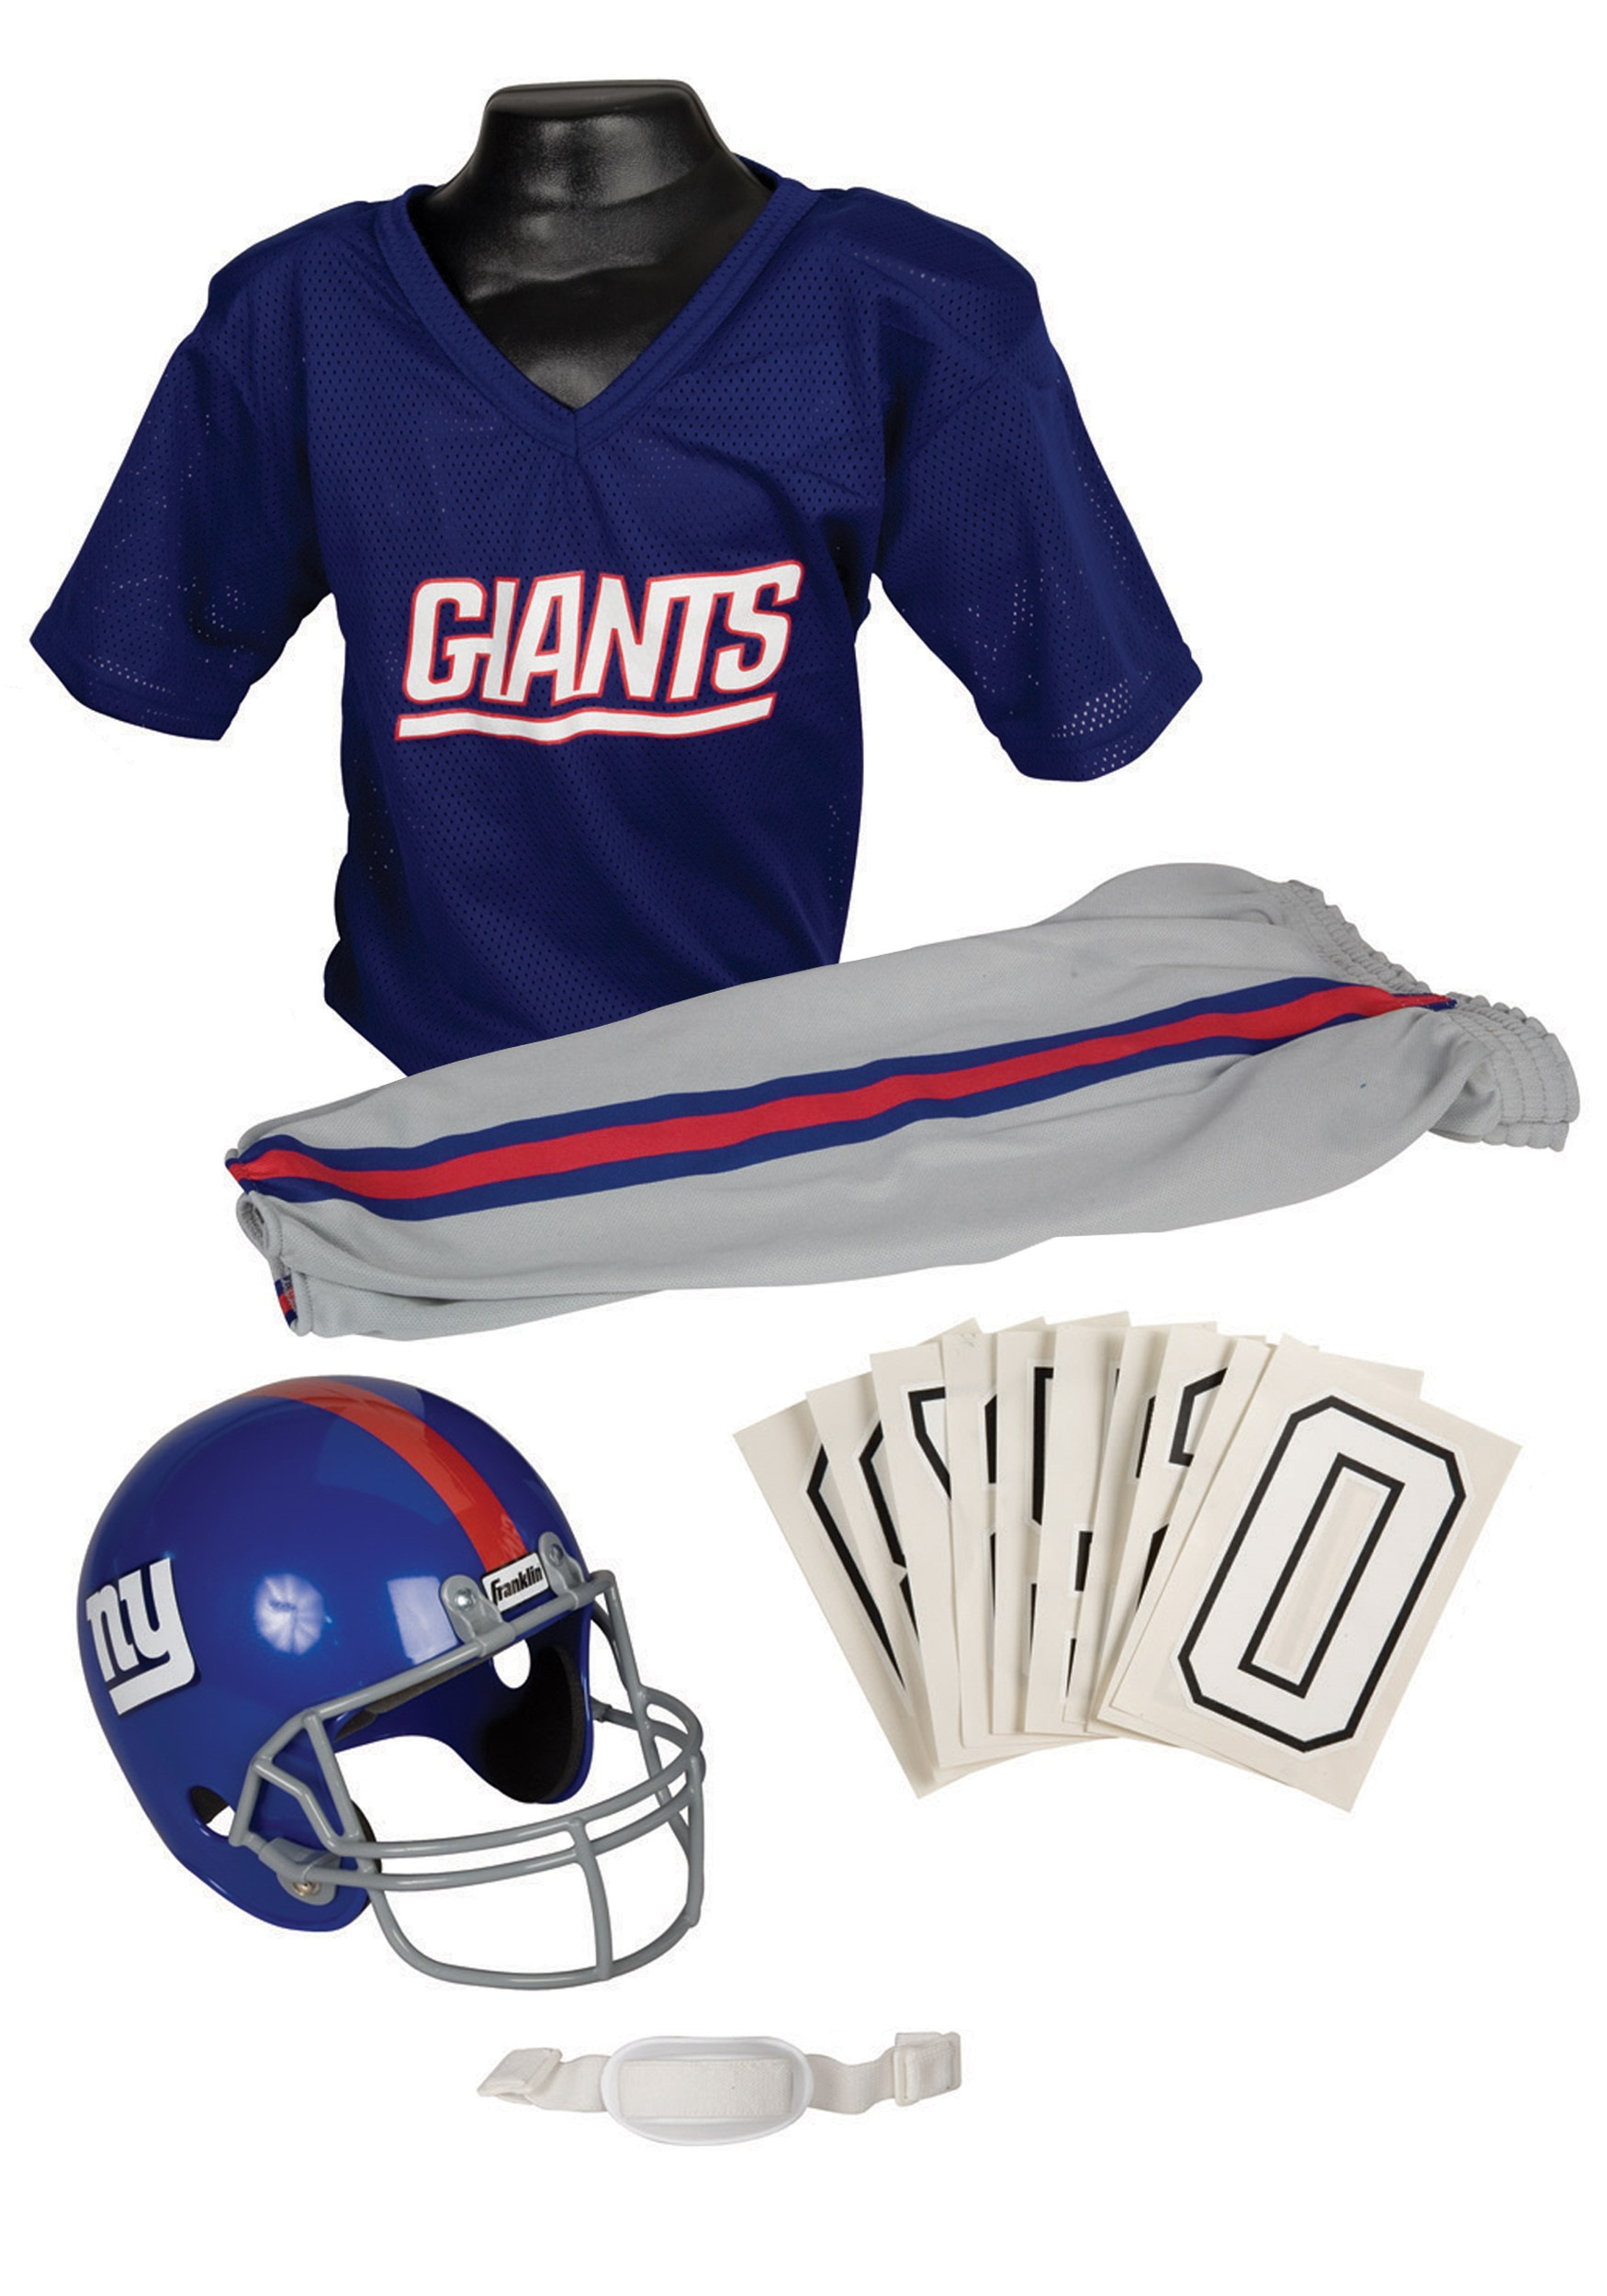 79edafb4691 Sports Halloween Costumes   Uniforms - HalloweenCostumes.com